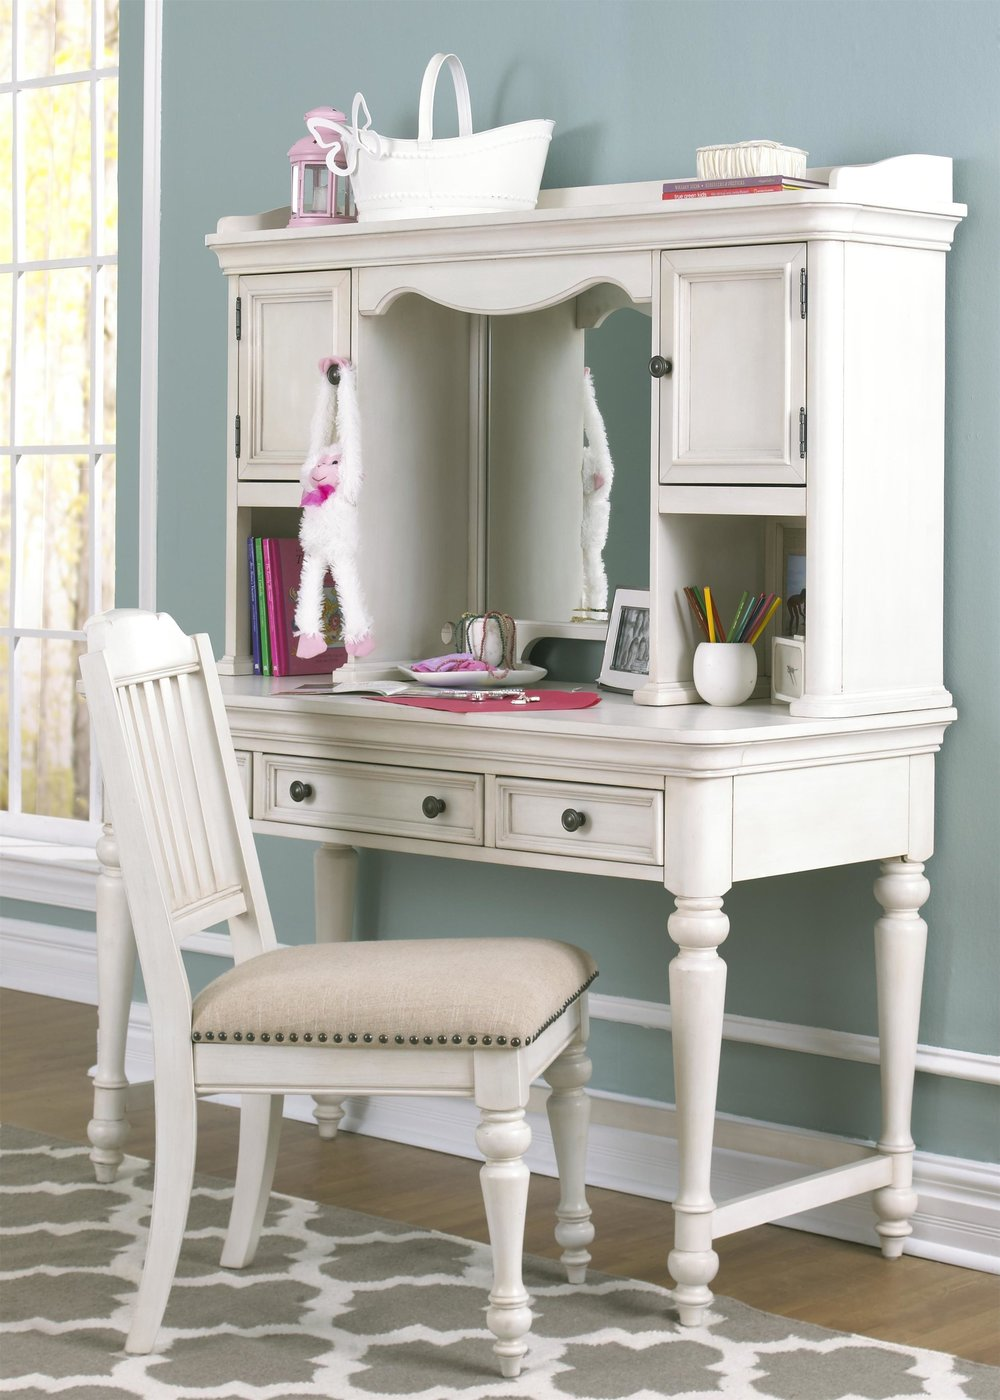 Everly Desk and Hutch - Multi-tasking is key in kids' rooms! The Everly Desk and Hutch features enough storage for books, pens, and more plus it has a mirror! Your young one can get ready for school in the mornings and complete their homework in the afternoons.The classic chair that matches features an upholstered seat and nailhead trim continuing the classic style.